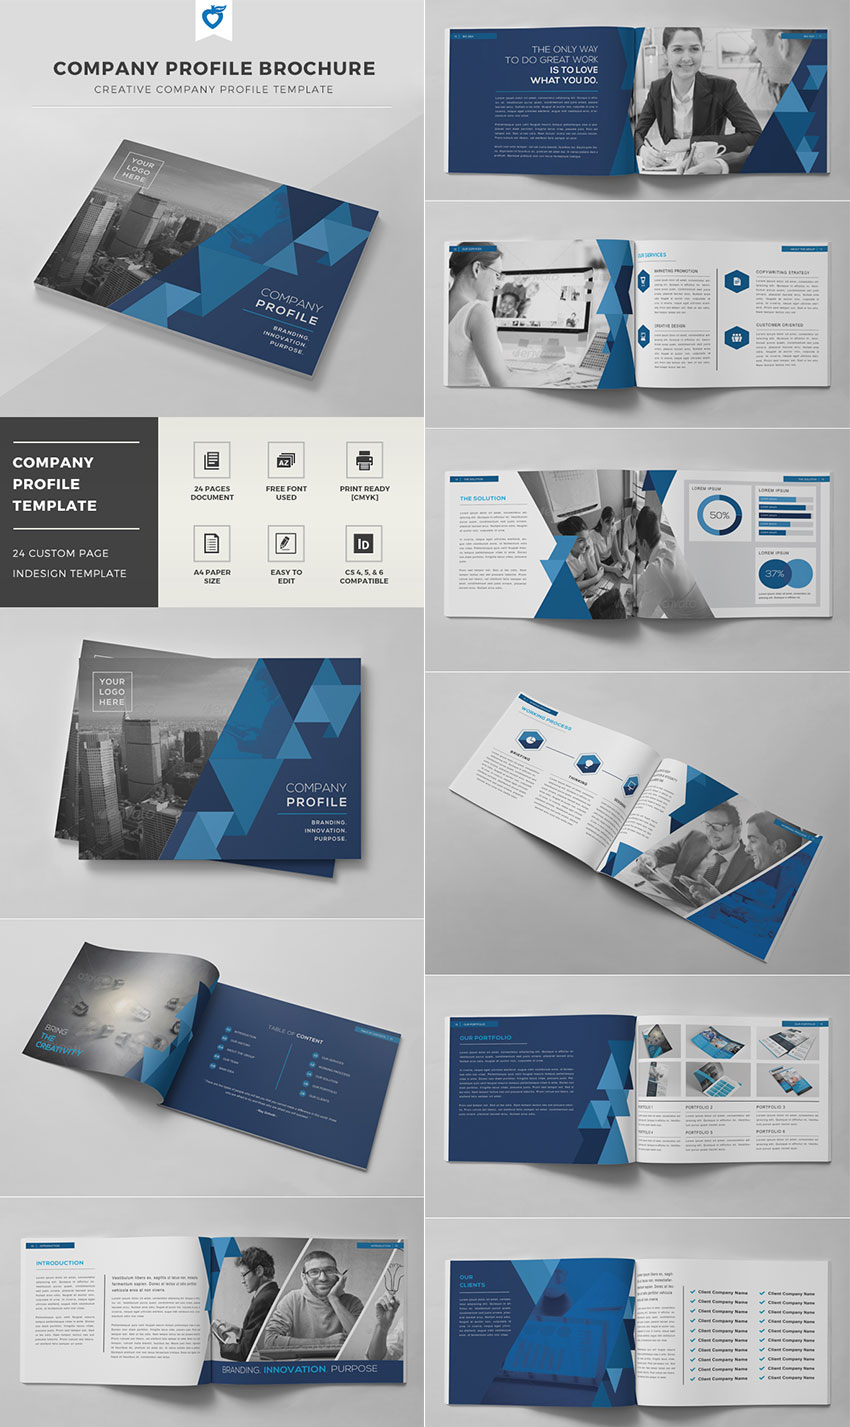 brochure online template - 20 best indesign brochure templates for creative